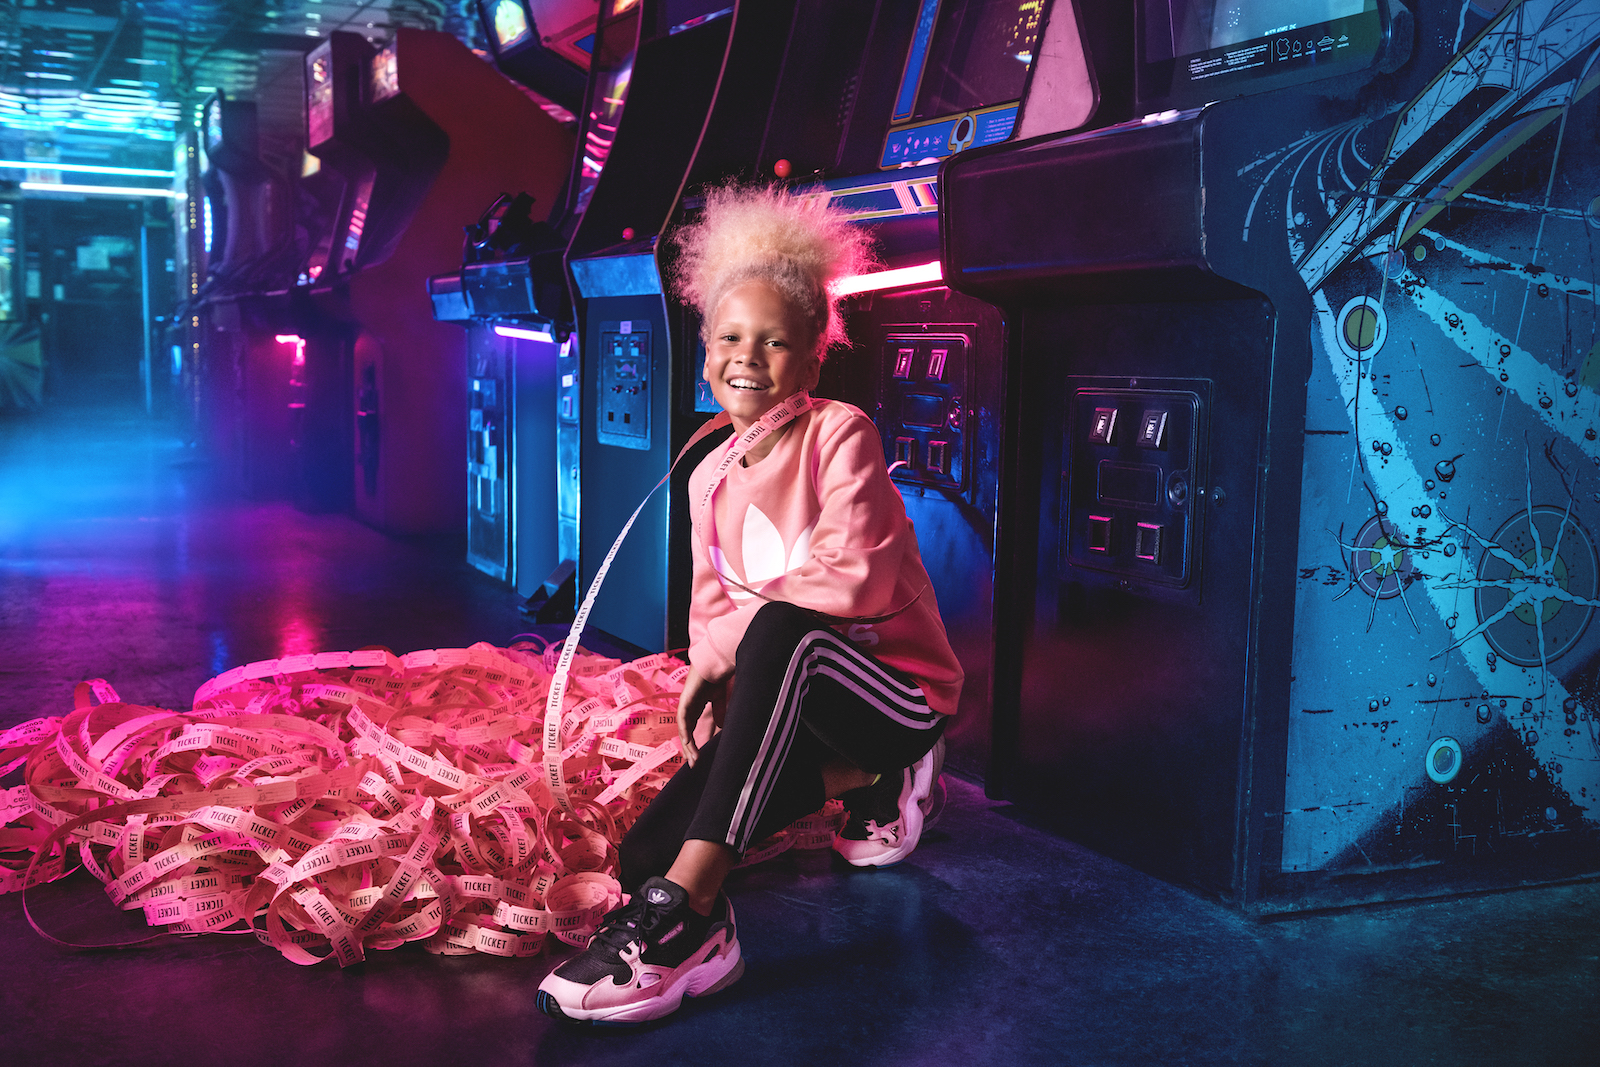 A smiling girl kneels in front of a row of arcade games with a huge pile of pink tickets.